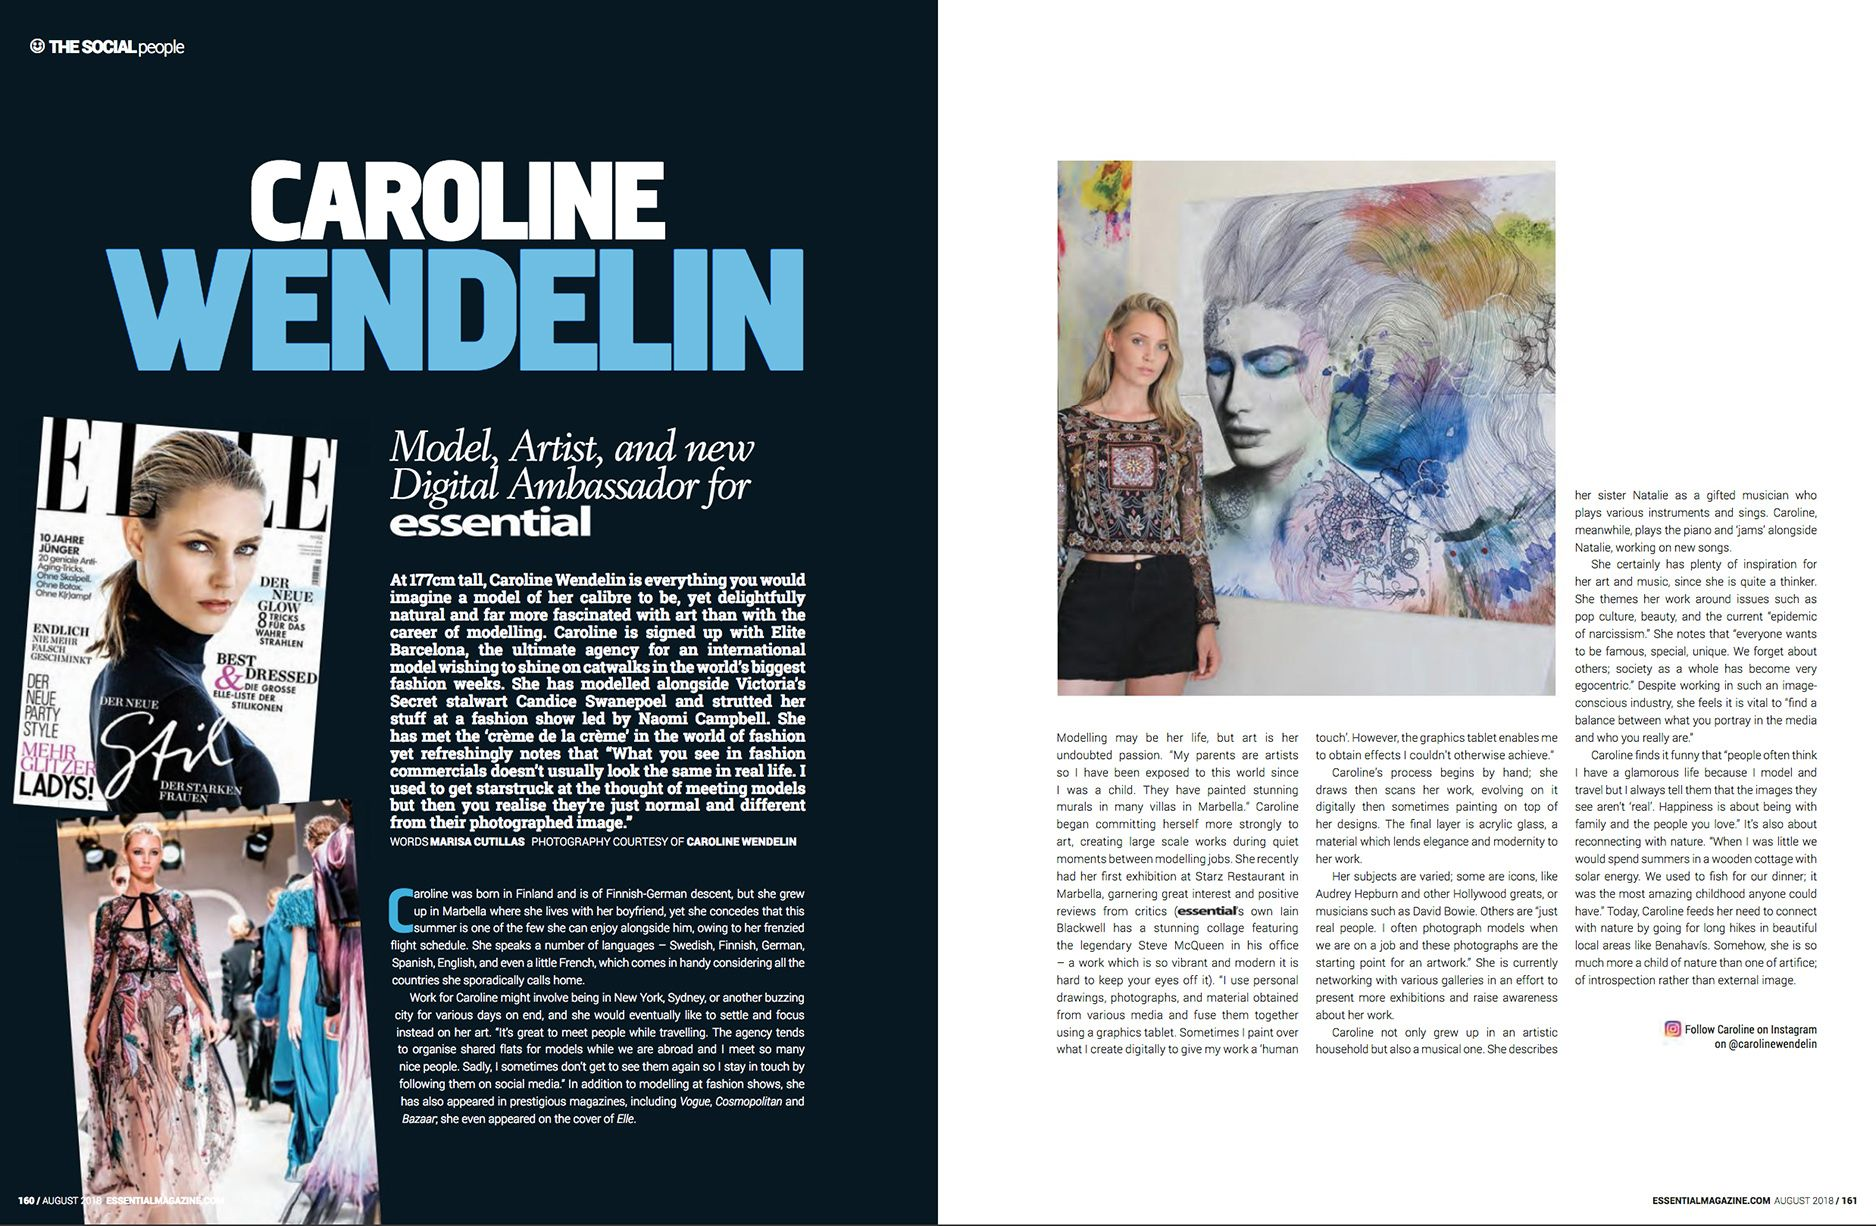 _Caroline_Wendelin_interview.jpg